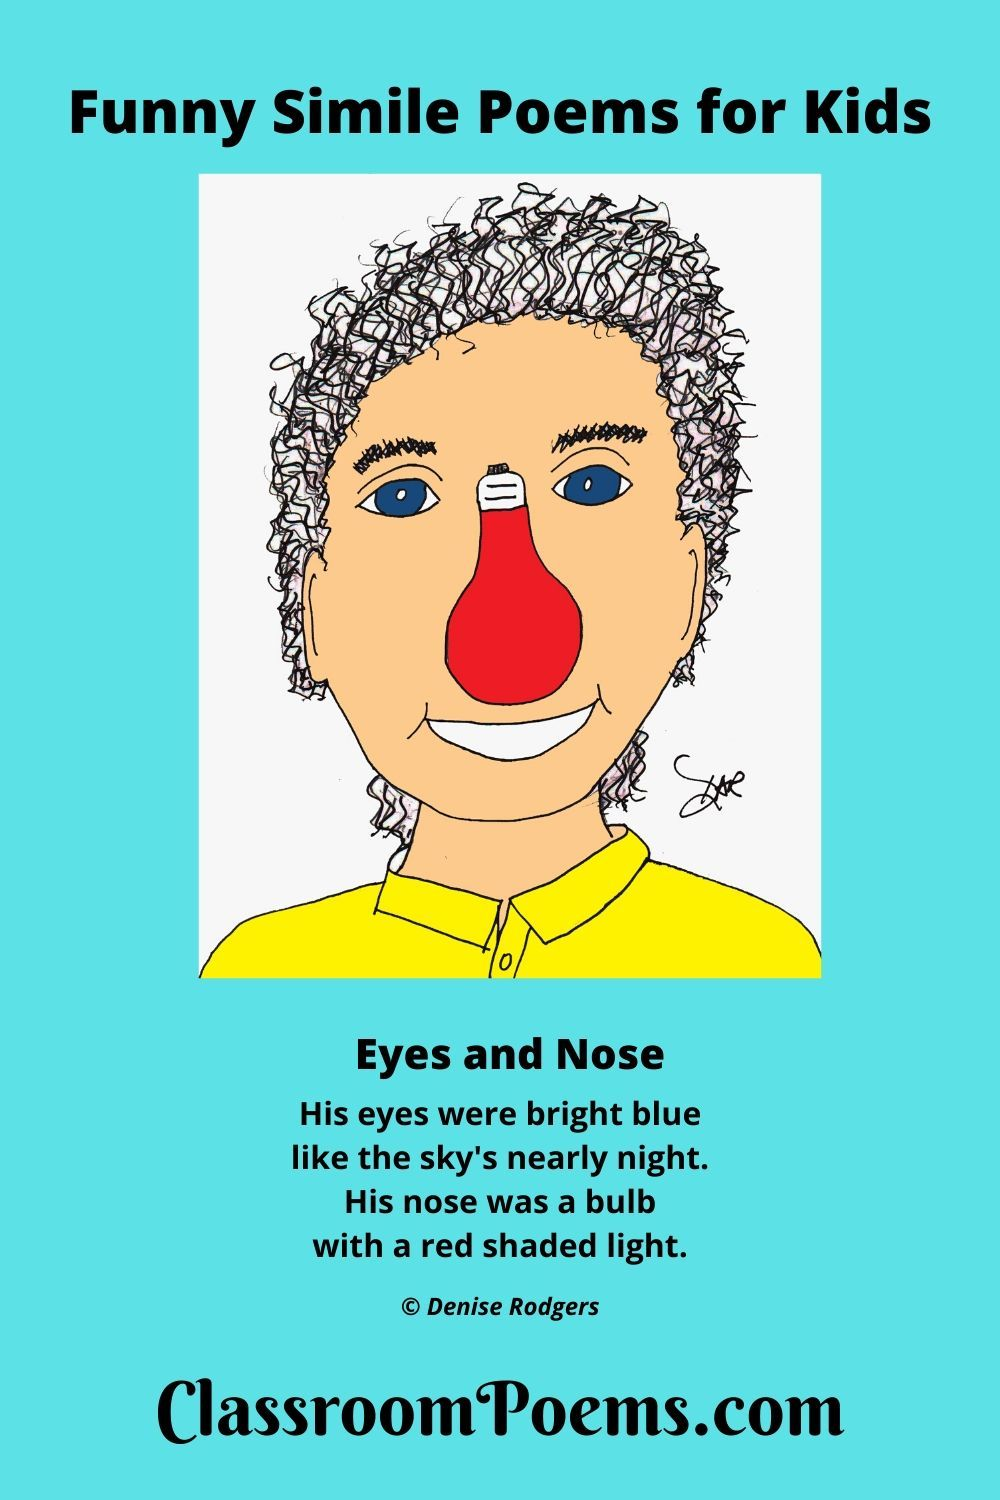 Funny Simile Poems in 2020 | Simile poems, Poetry for kids